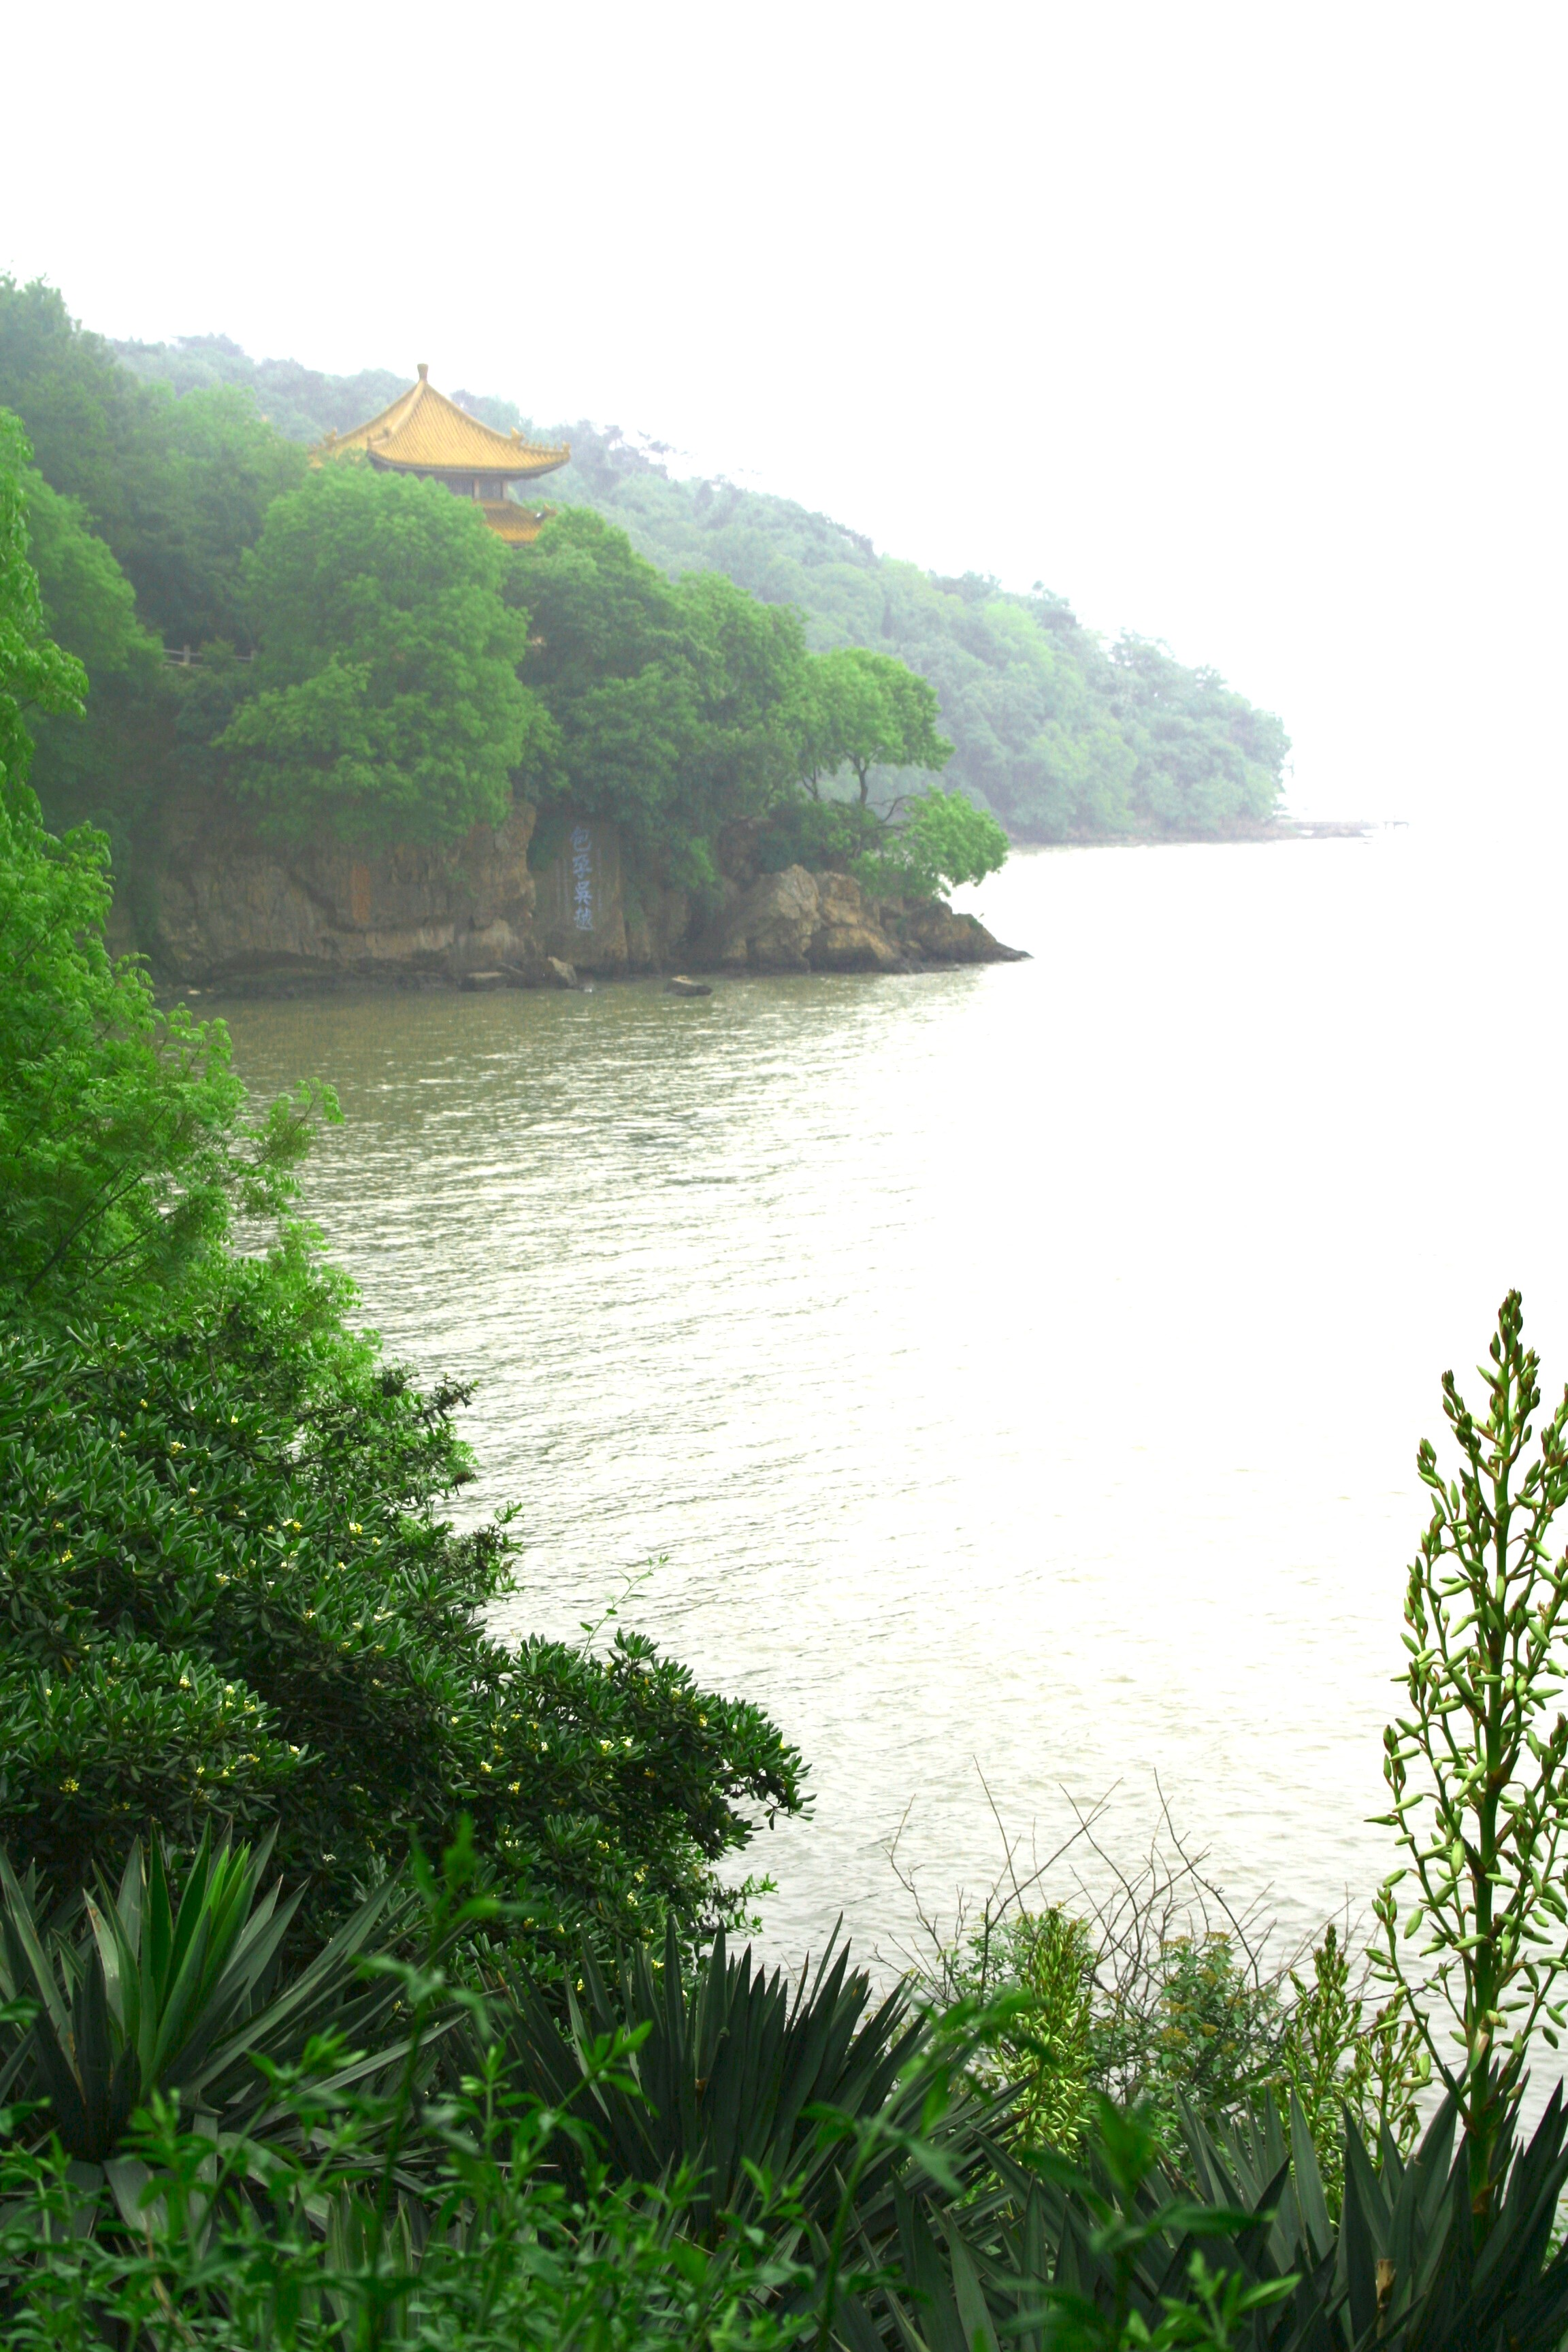 http://upload.wikimedia.org/wikipedia/en/7/7d/Lake_Tai_1.jpg